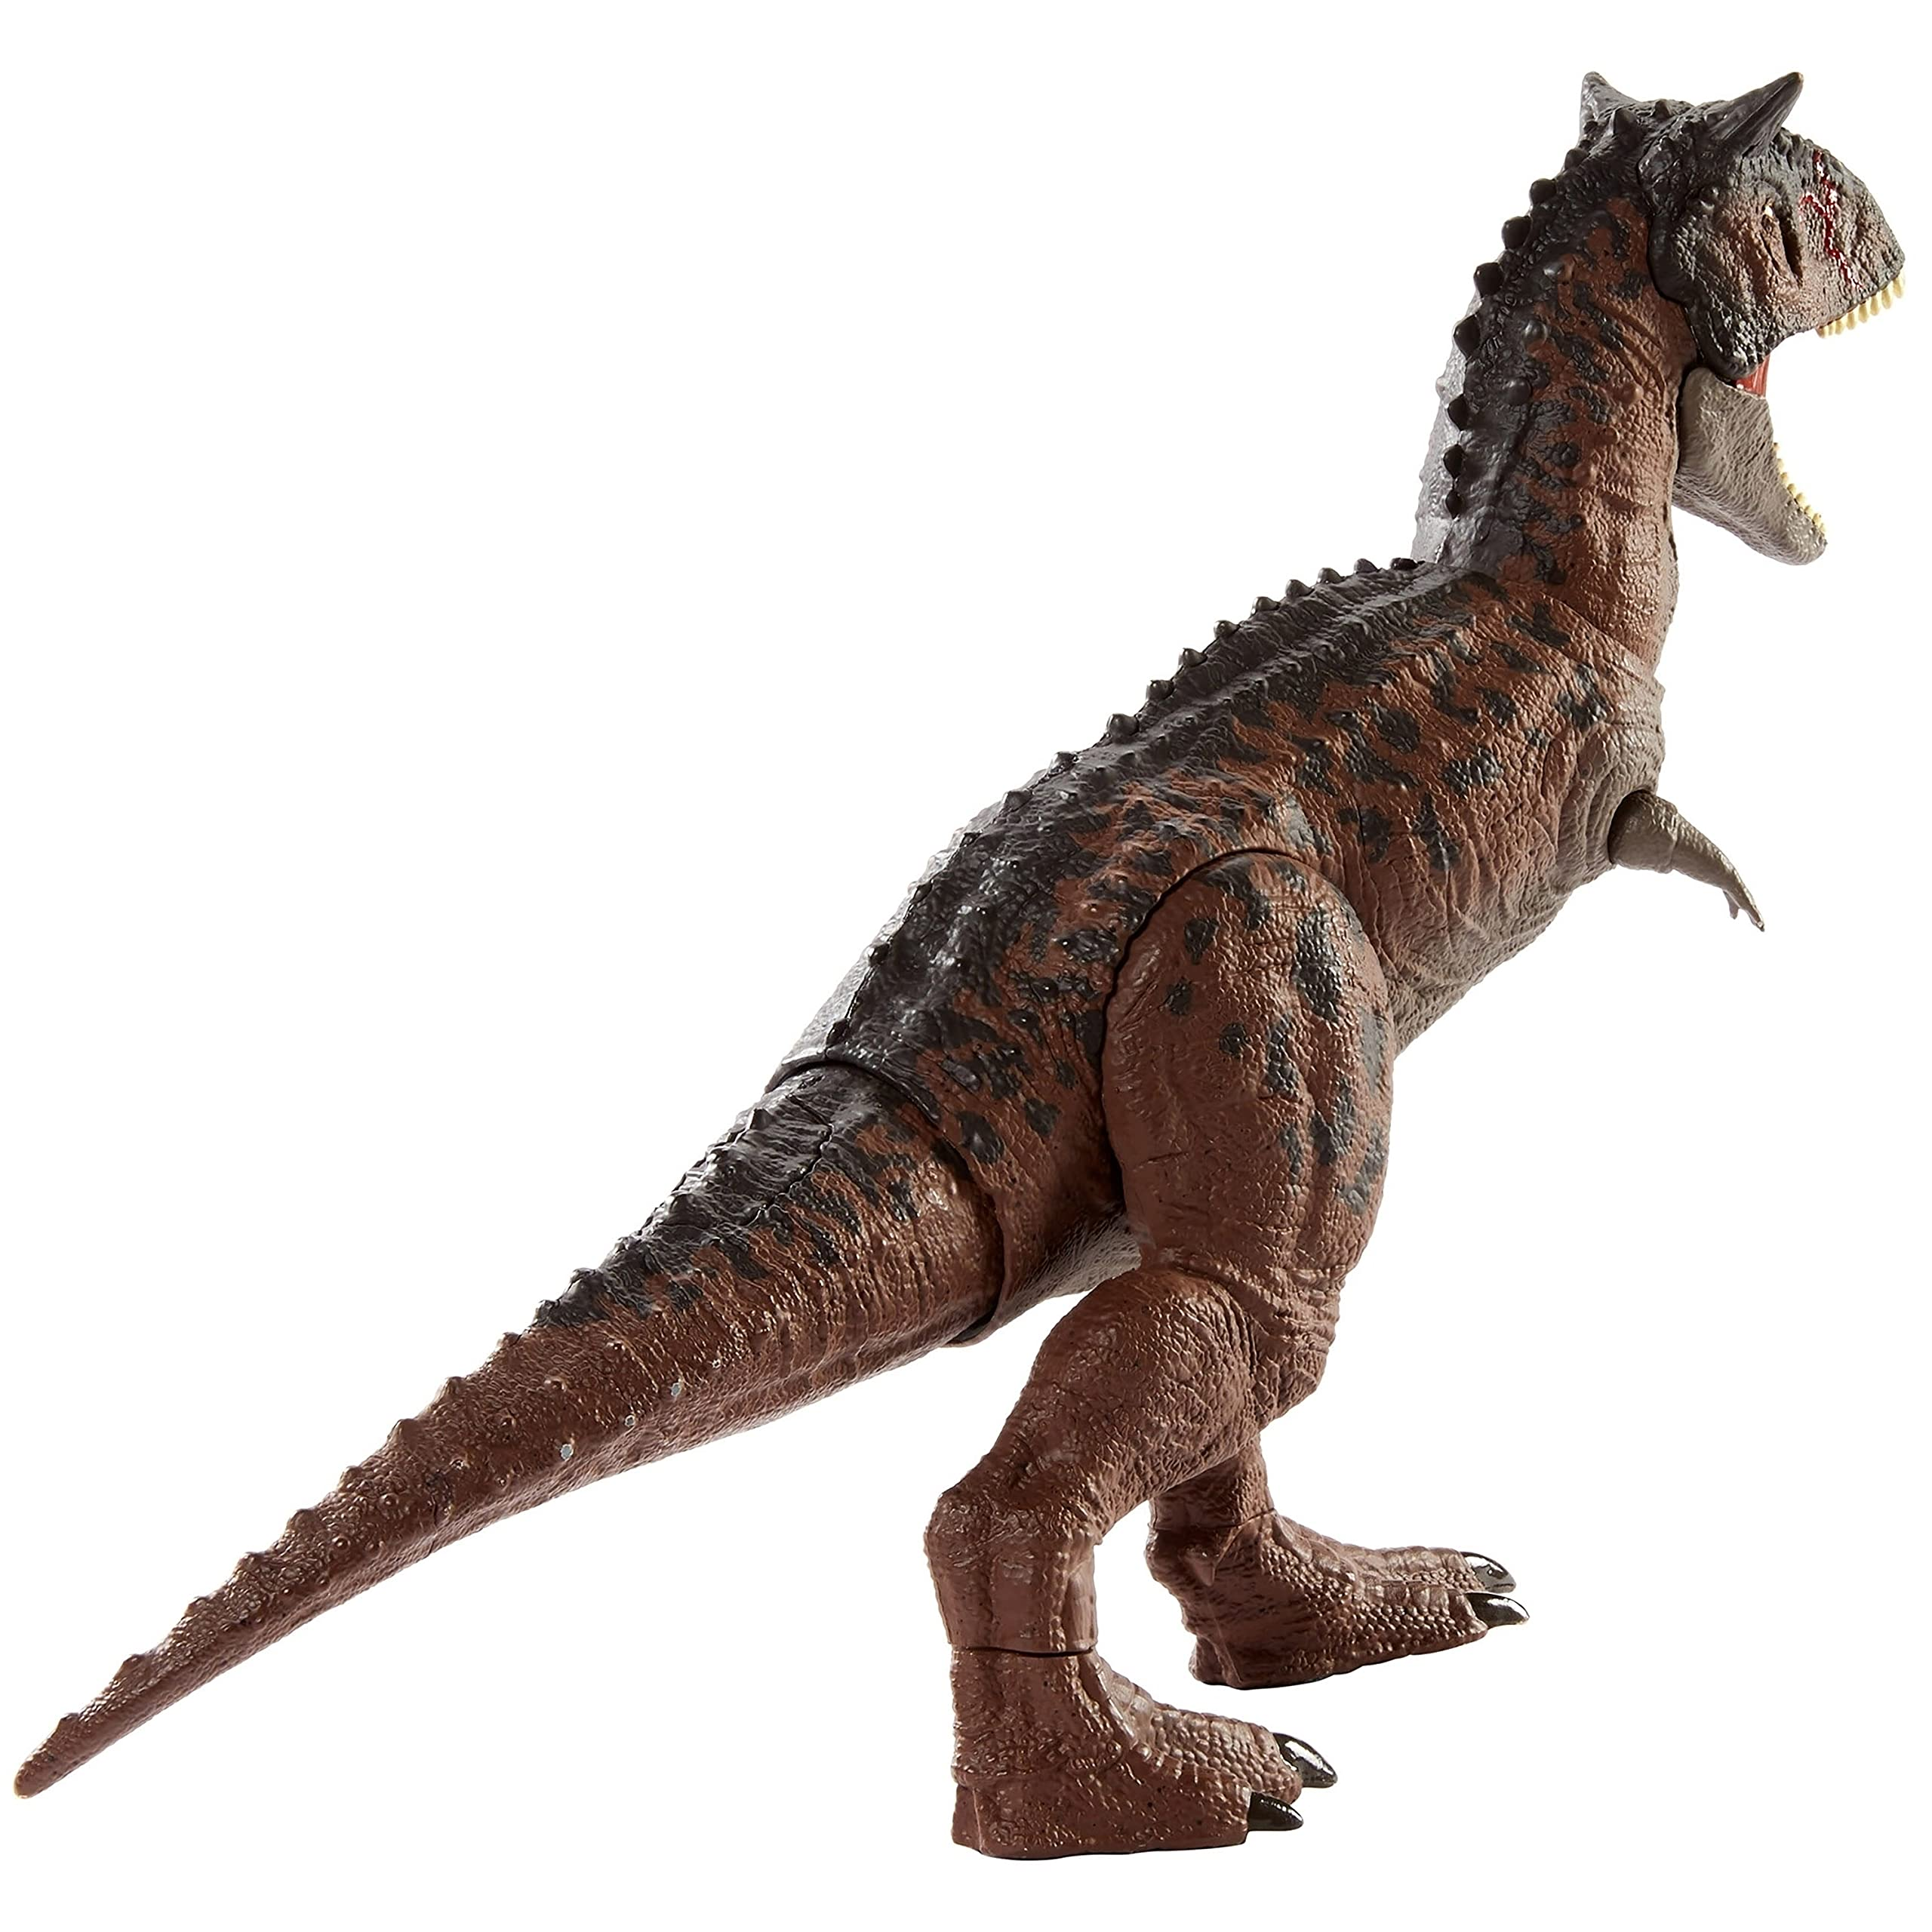 Jurassic World Camp Cretaceous Control 'N Conquer Carnotaurus Toro Large Dinosaur, Primal Attack Feature, Sounds, Movable Joints, Map & Stickers, Ages 4 Years & Up